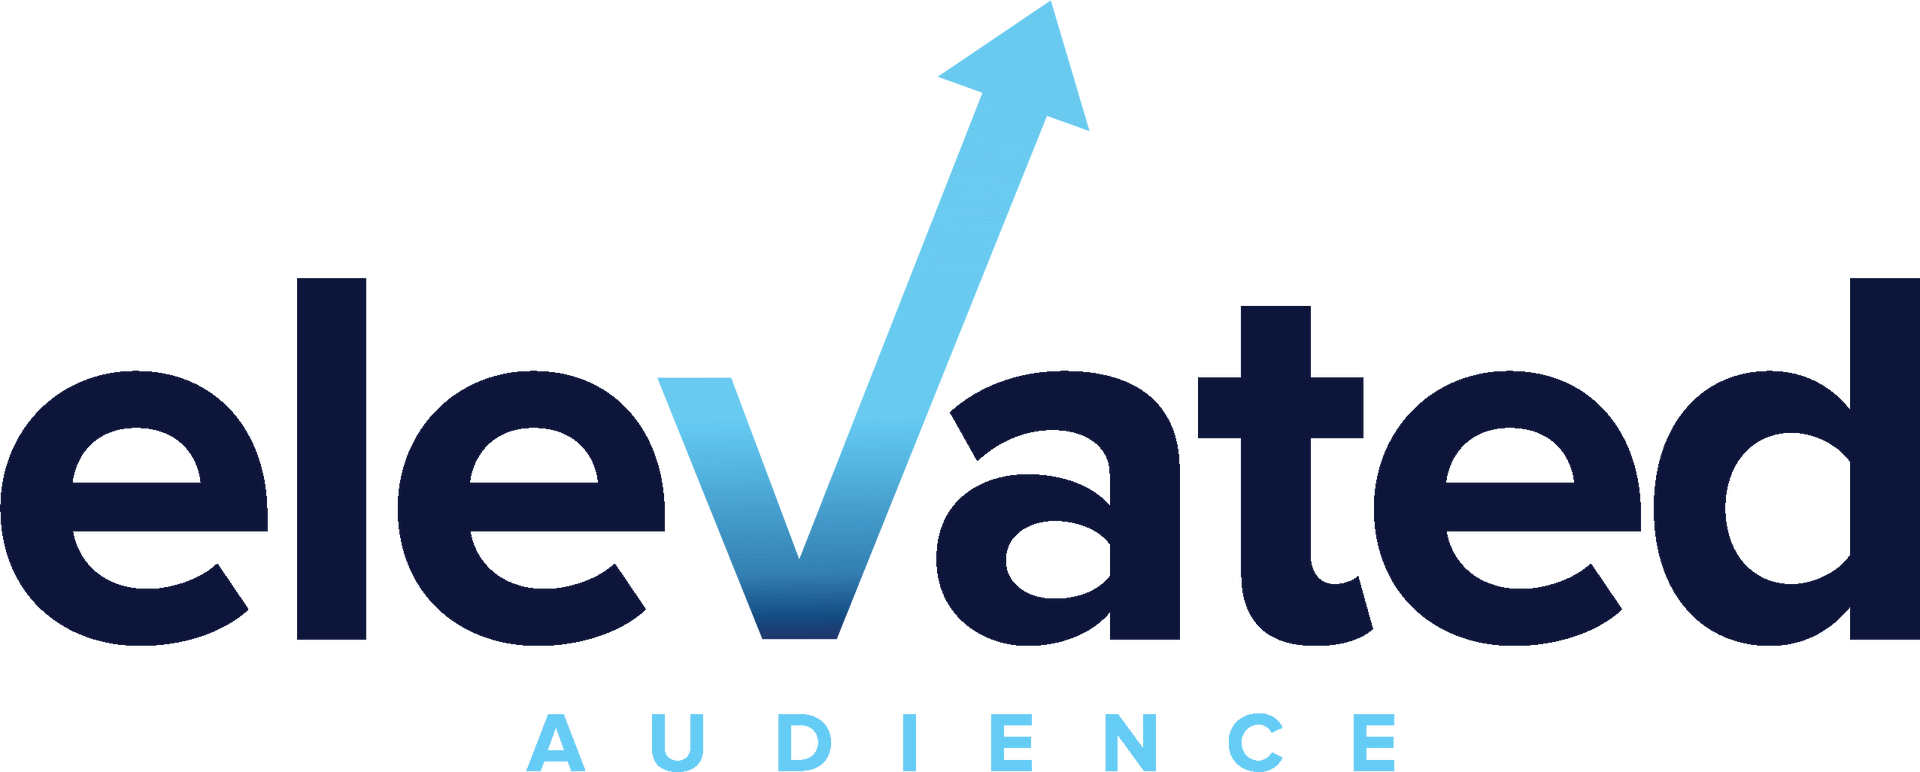 ELEVATED AUDIENCE - Navy